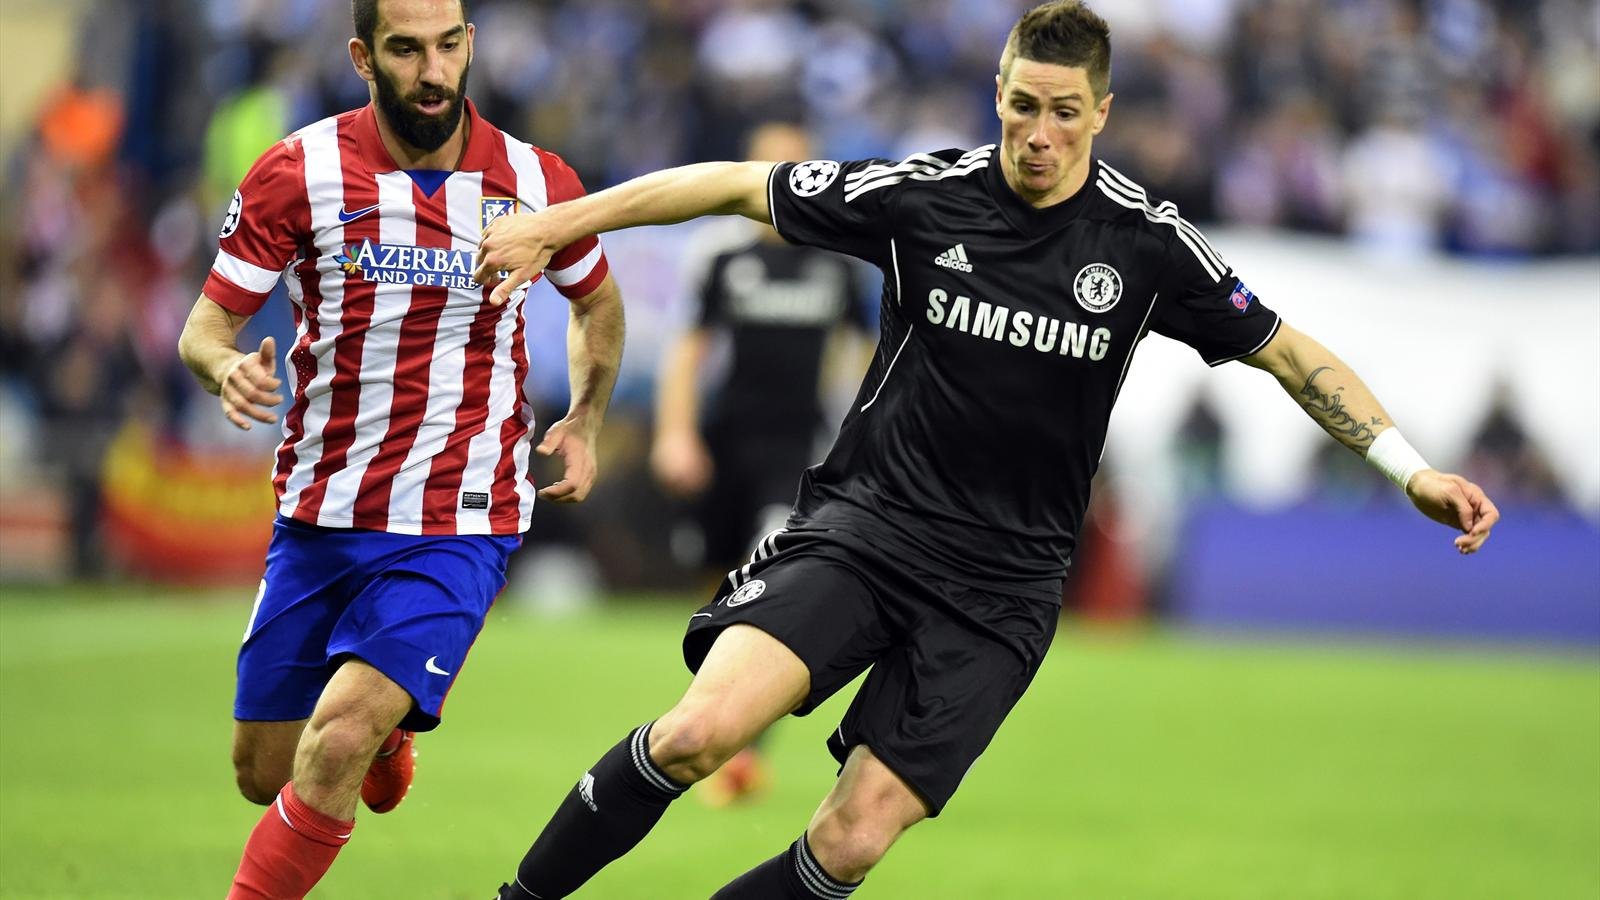 Fernando Torres v Atletico Madrid in the 2013/2014 Champions League (AFP